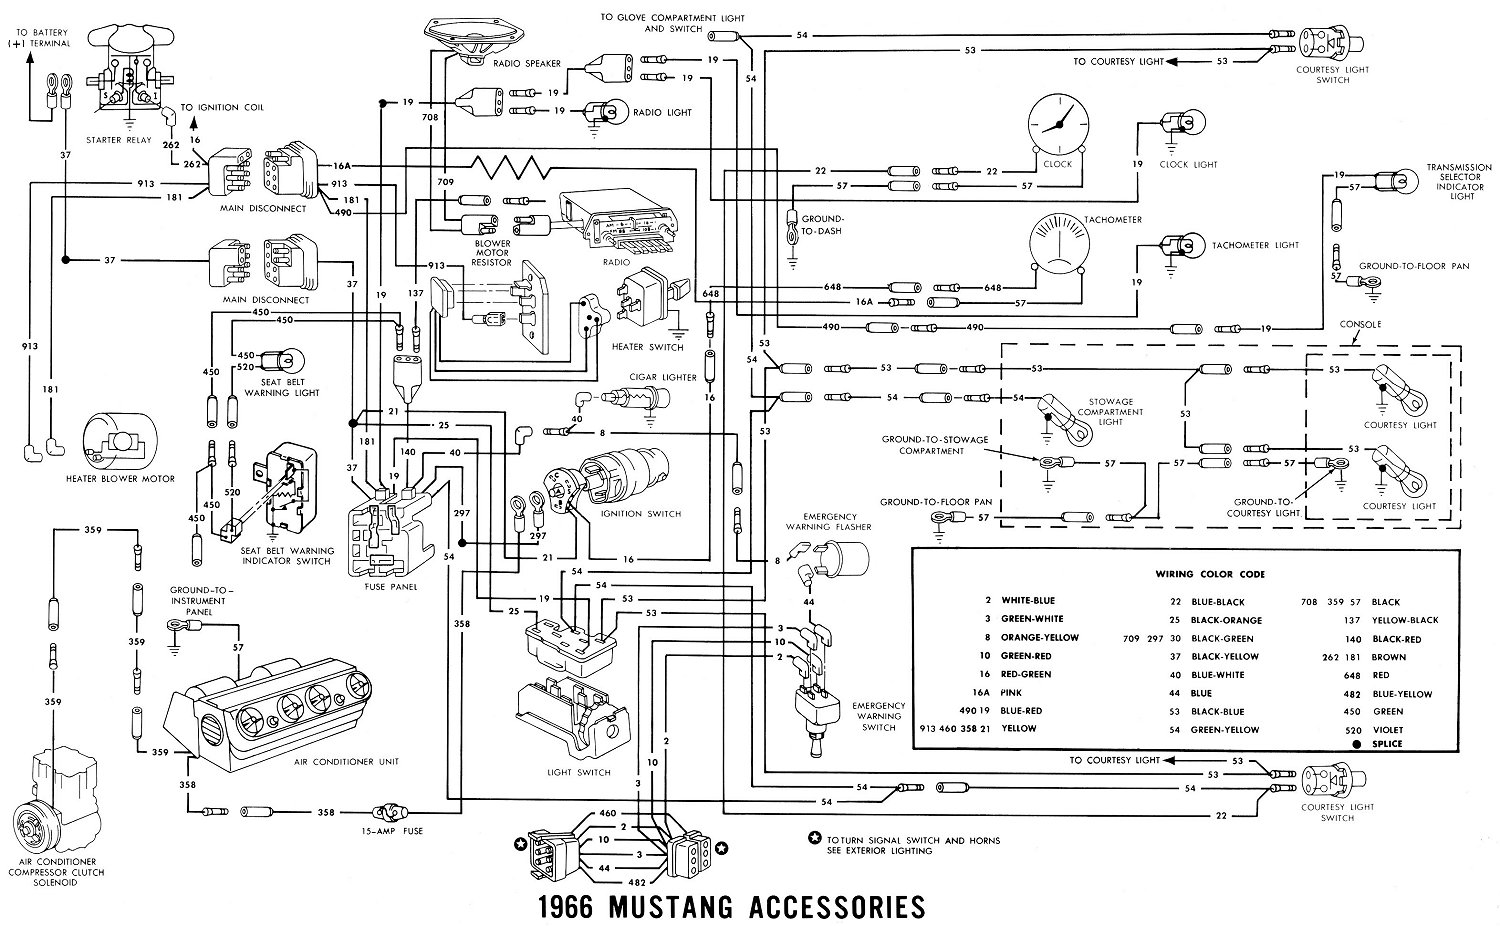 Mustang Instrument Cluster Wiring Diagram Ford Mustang ... on